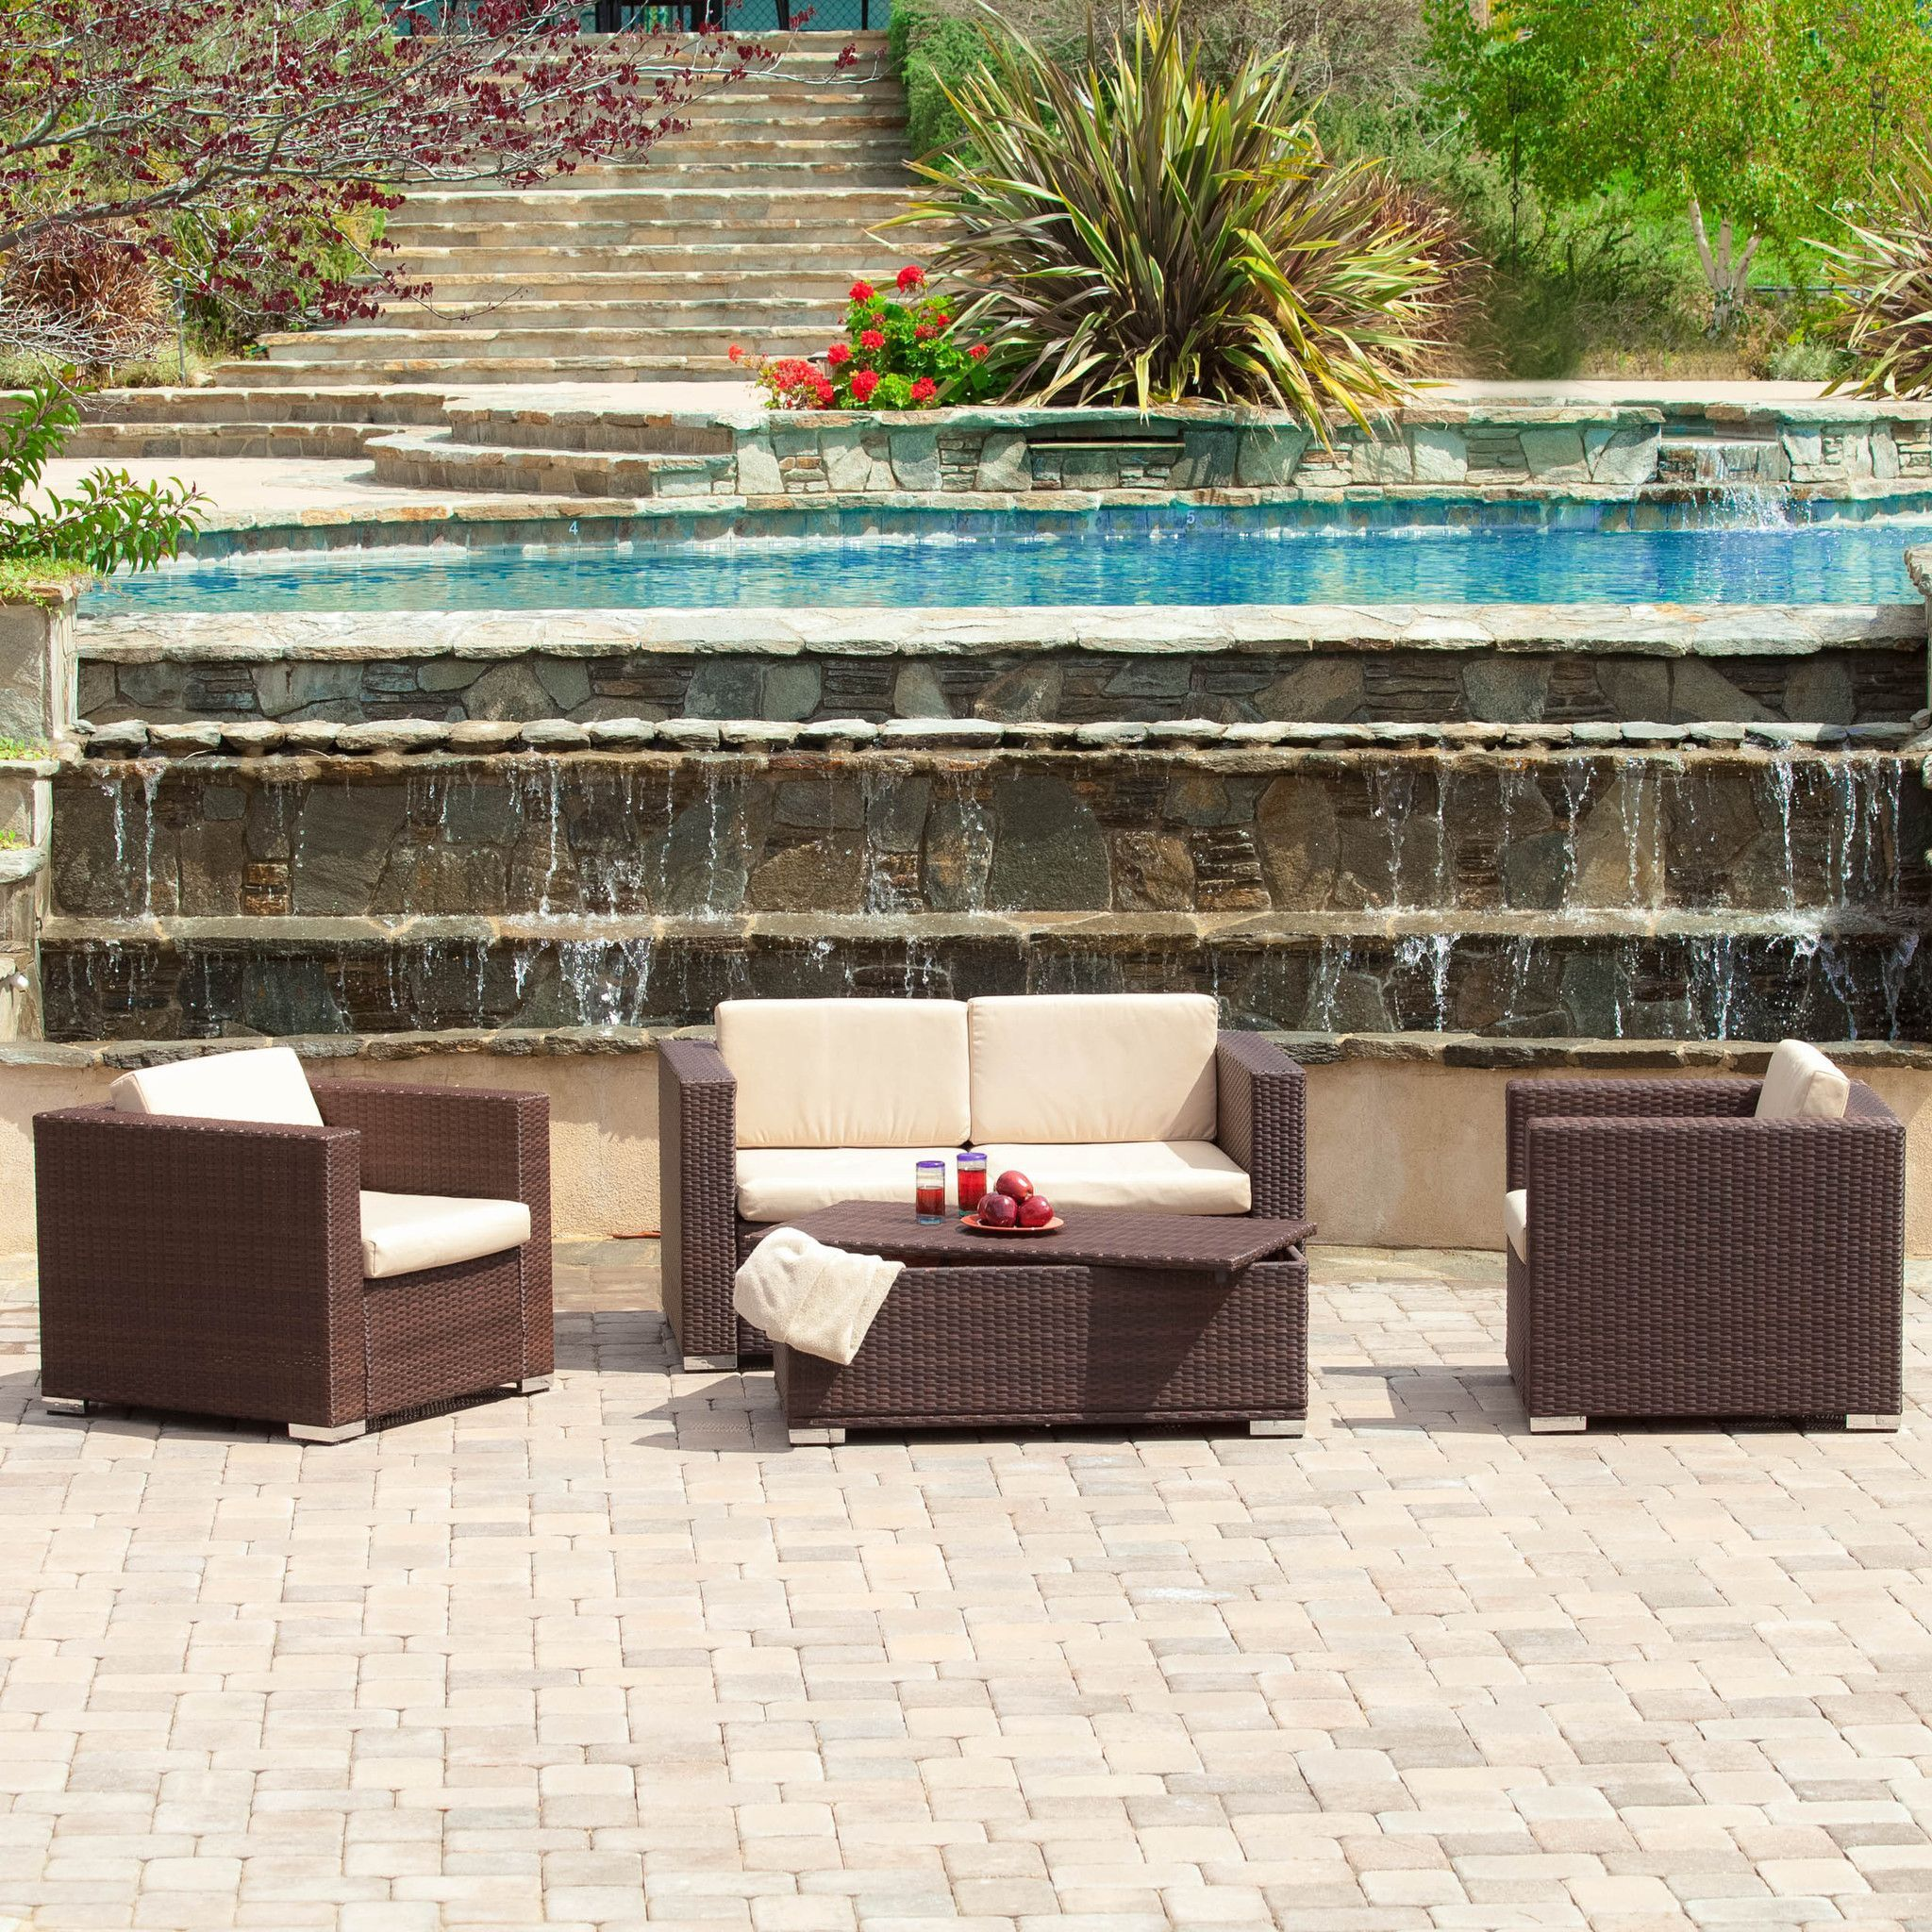 Denise Austin Home Montague Outdoor 4 Piece Brown Wicker Sofa SetDenise Austin Home Montague Outdoor 4 Piece Brown Wicker Sofa Set  . Outdoor Dining Sets Austin. Home Design Ideas